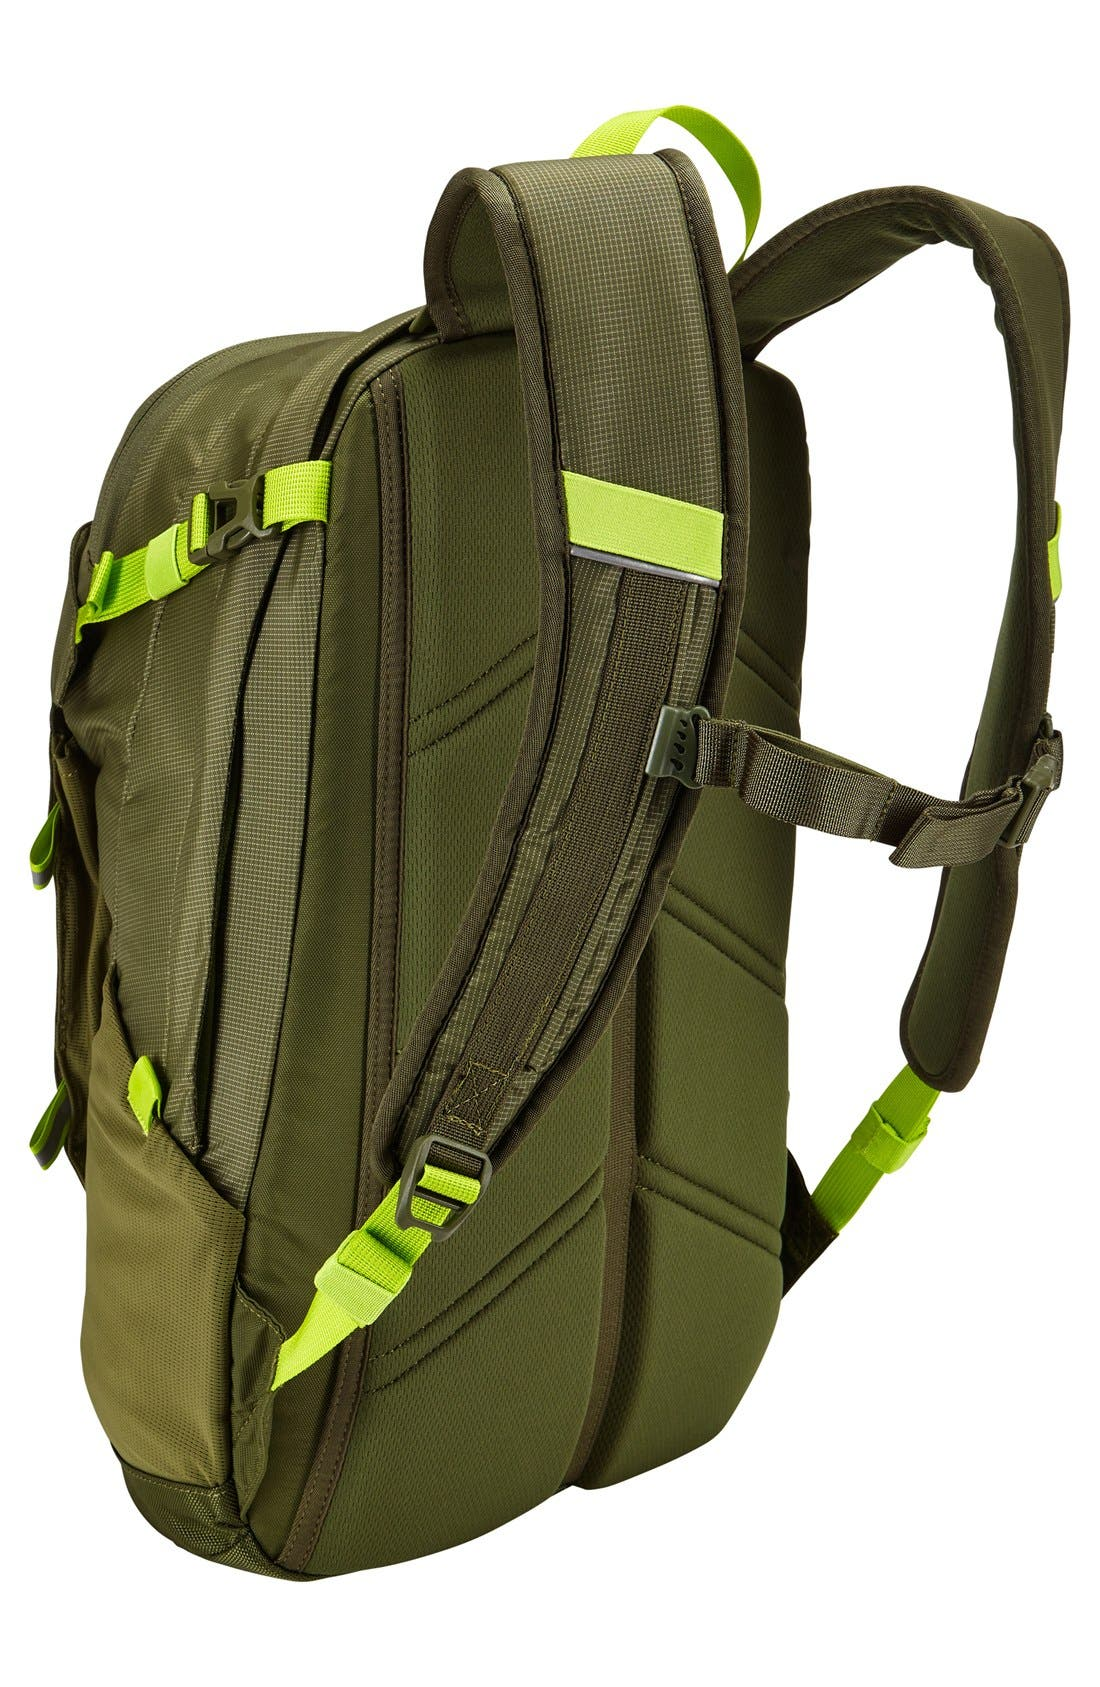 EnRoute Triumph 21-Liter Backpack,                             Alternate thumbnail 2, color,                             340